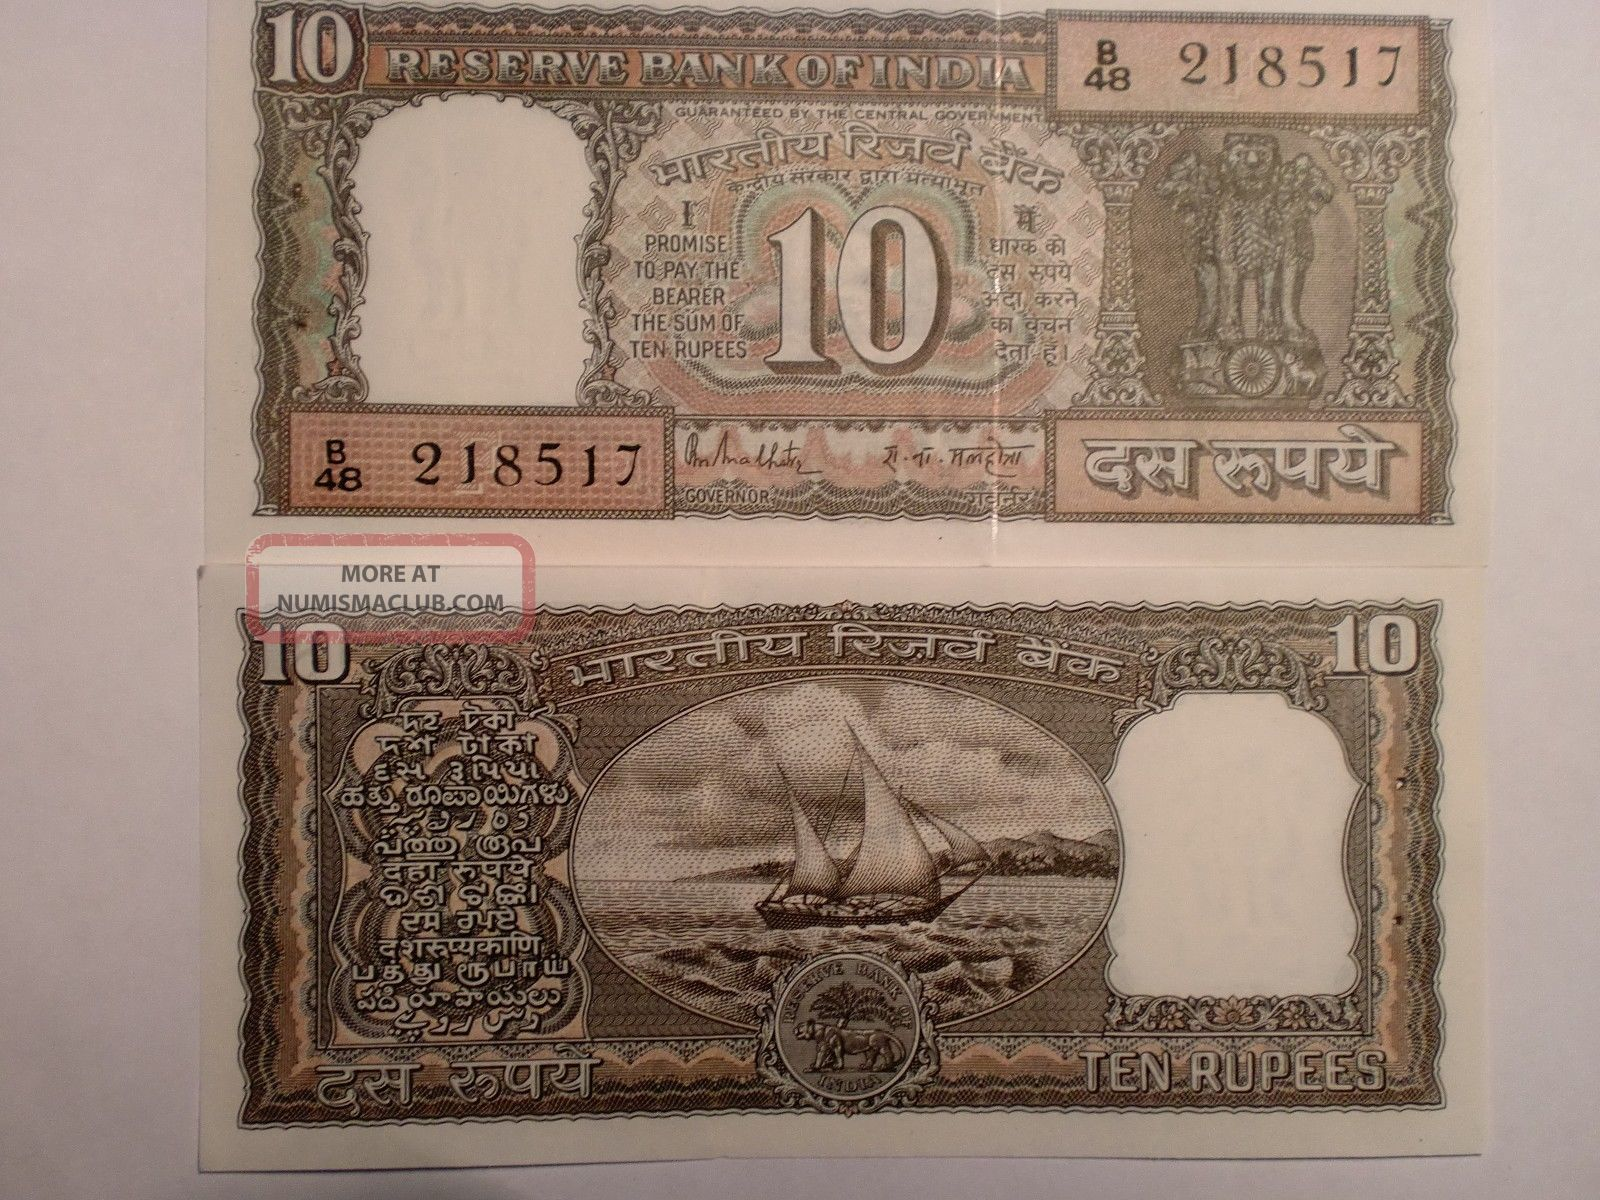 India Paper Money - Old Currency Note - Rupees 10/ - Dark